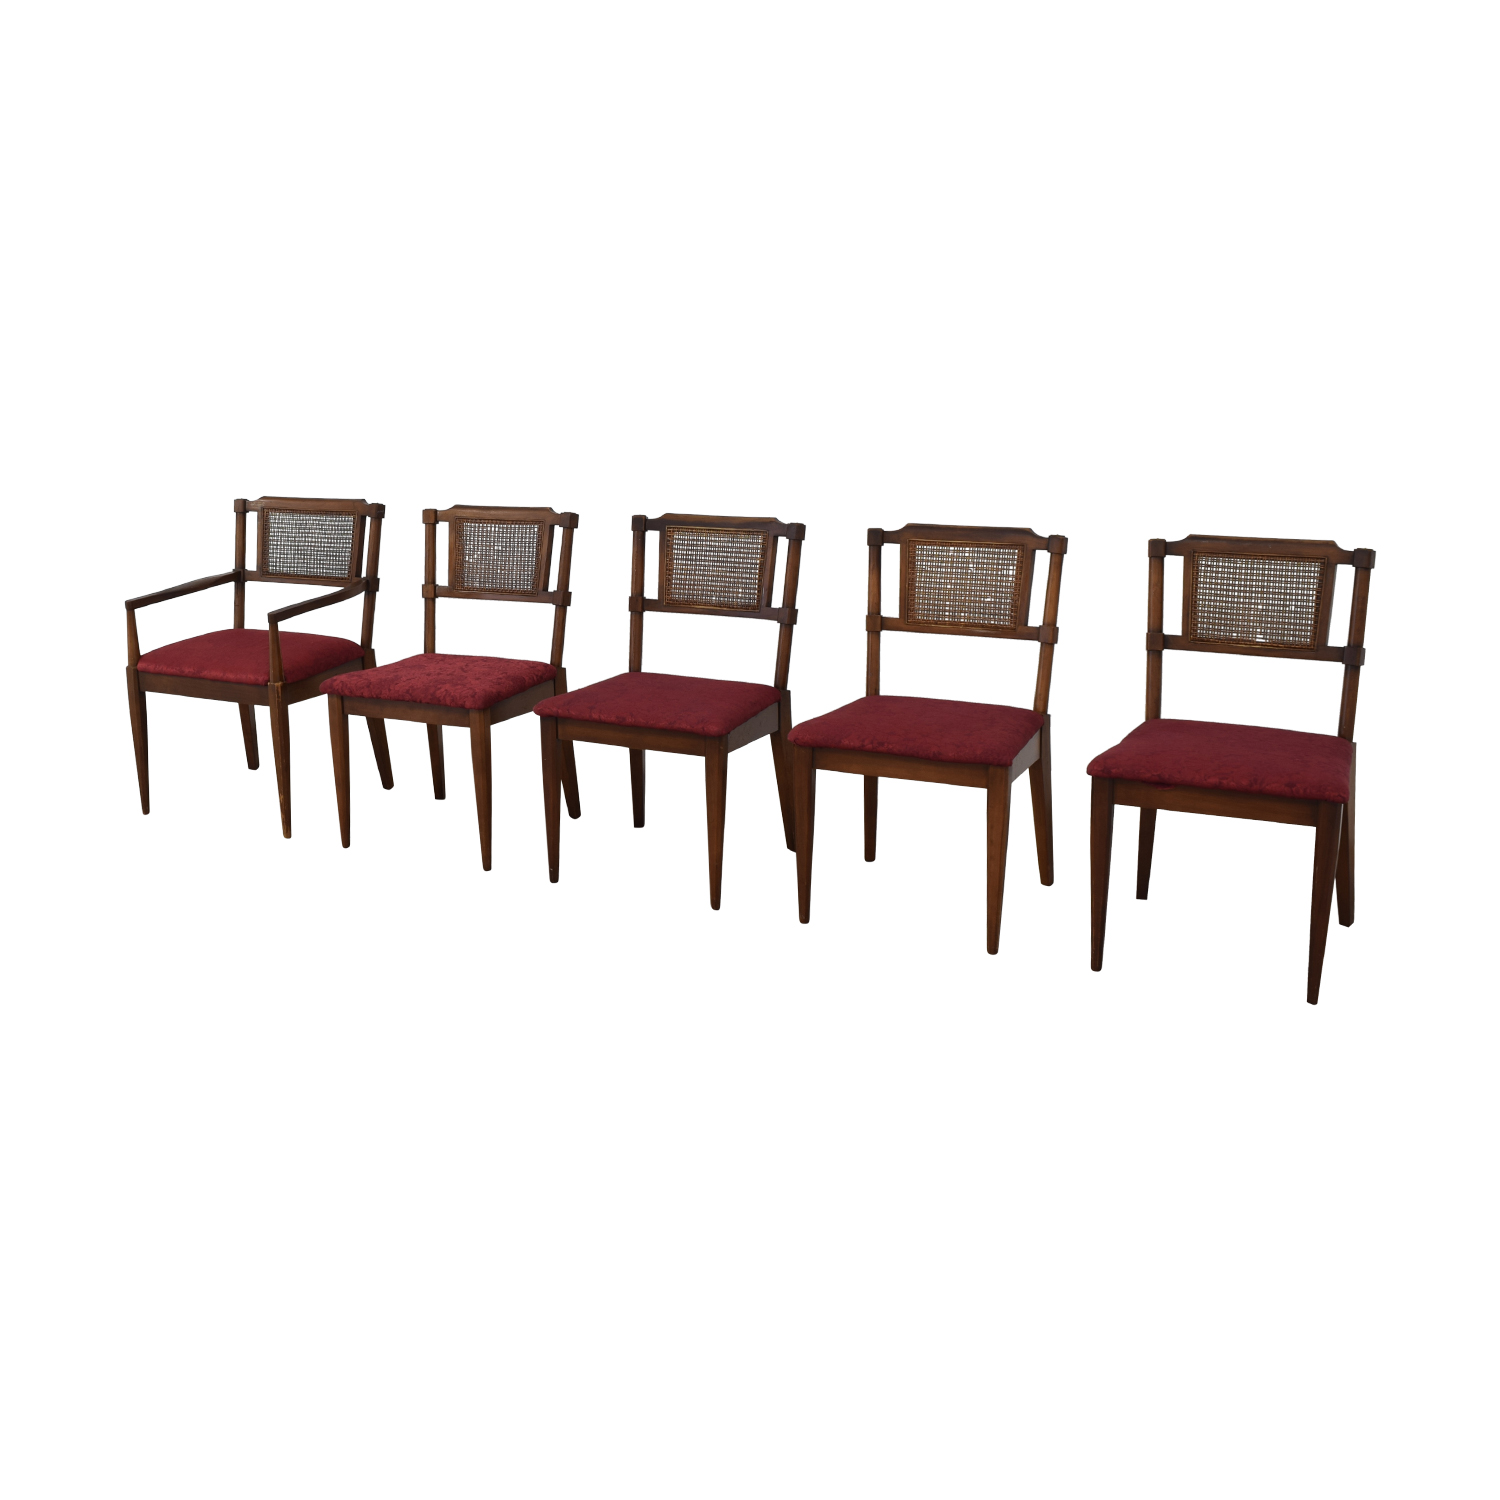 buy R & E Gordon Furniture Co. Dining Chairs R & E Gordon Furniture Co. Dining Chairs